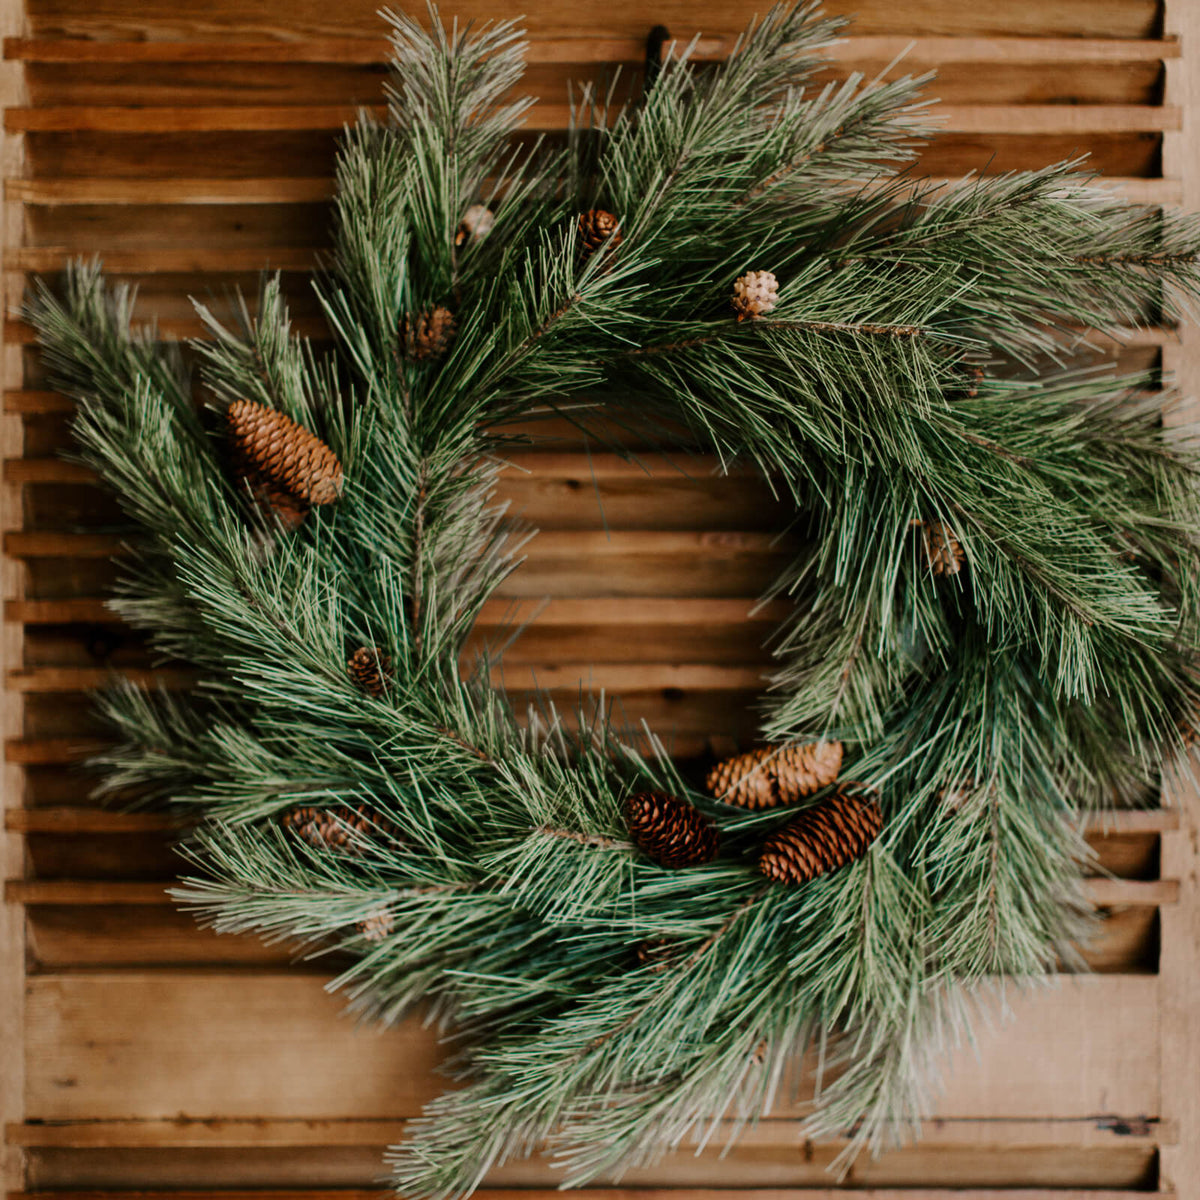 A 24 inch diameter soft faux pine wreath with real natural pinecones, a traditional winter decor wreath